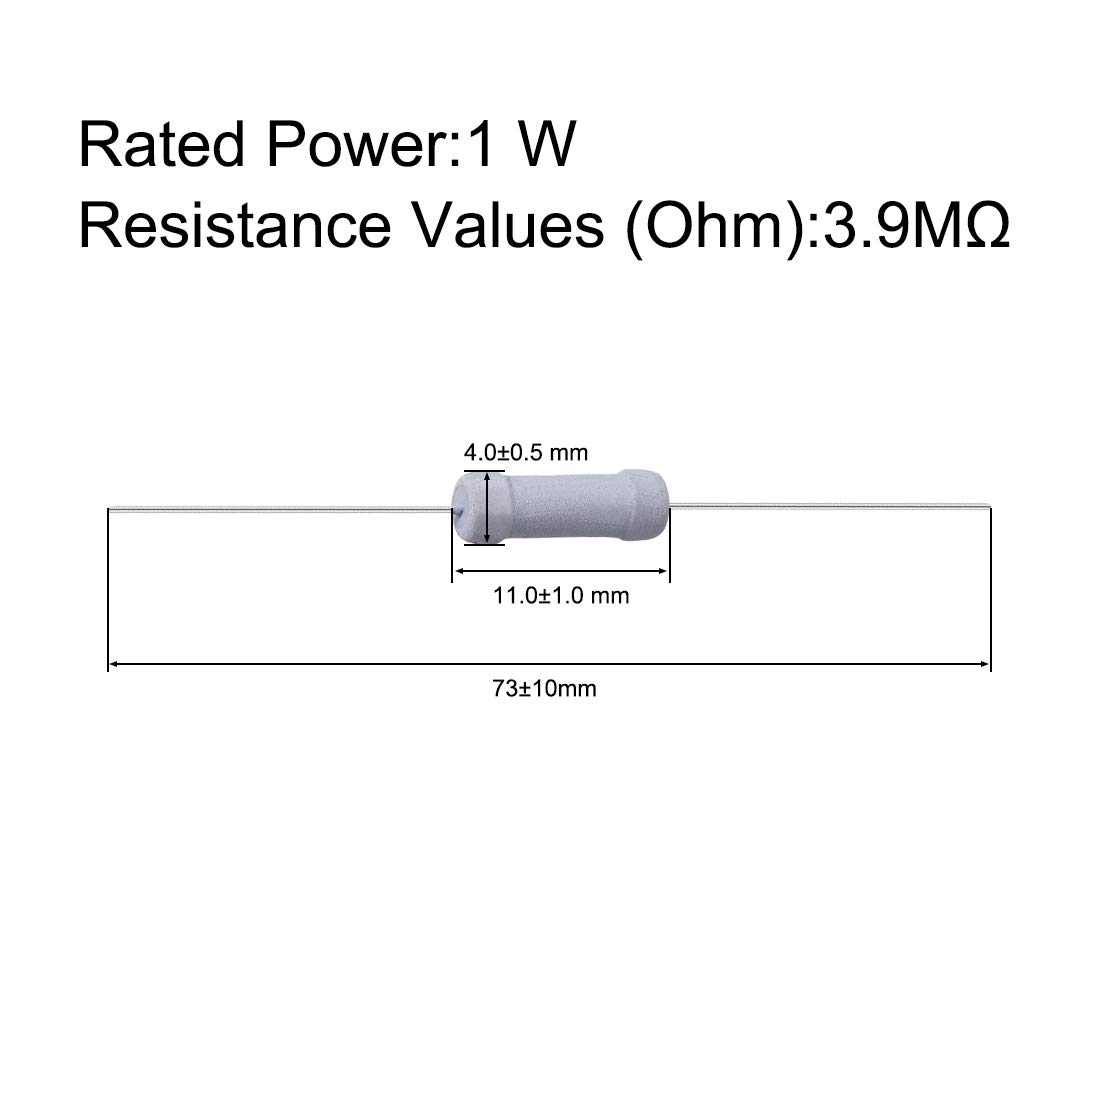 3.9M Ohm Resistance for DIY Electronic Projects and Experiments Flame Proof uxcell 100 Pcs Metal Oxide Film Resistor 1W 5/% Tolerance Axial Lead